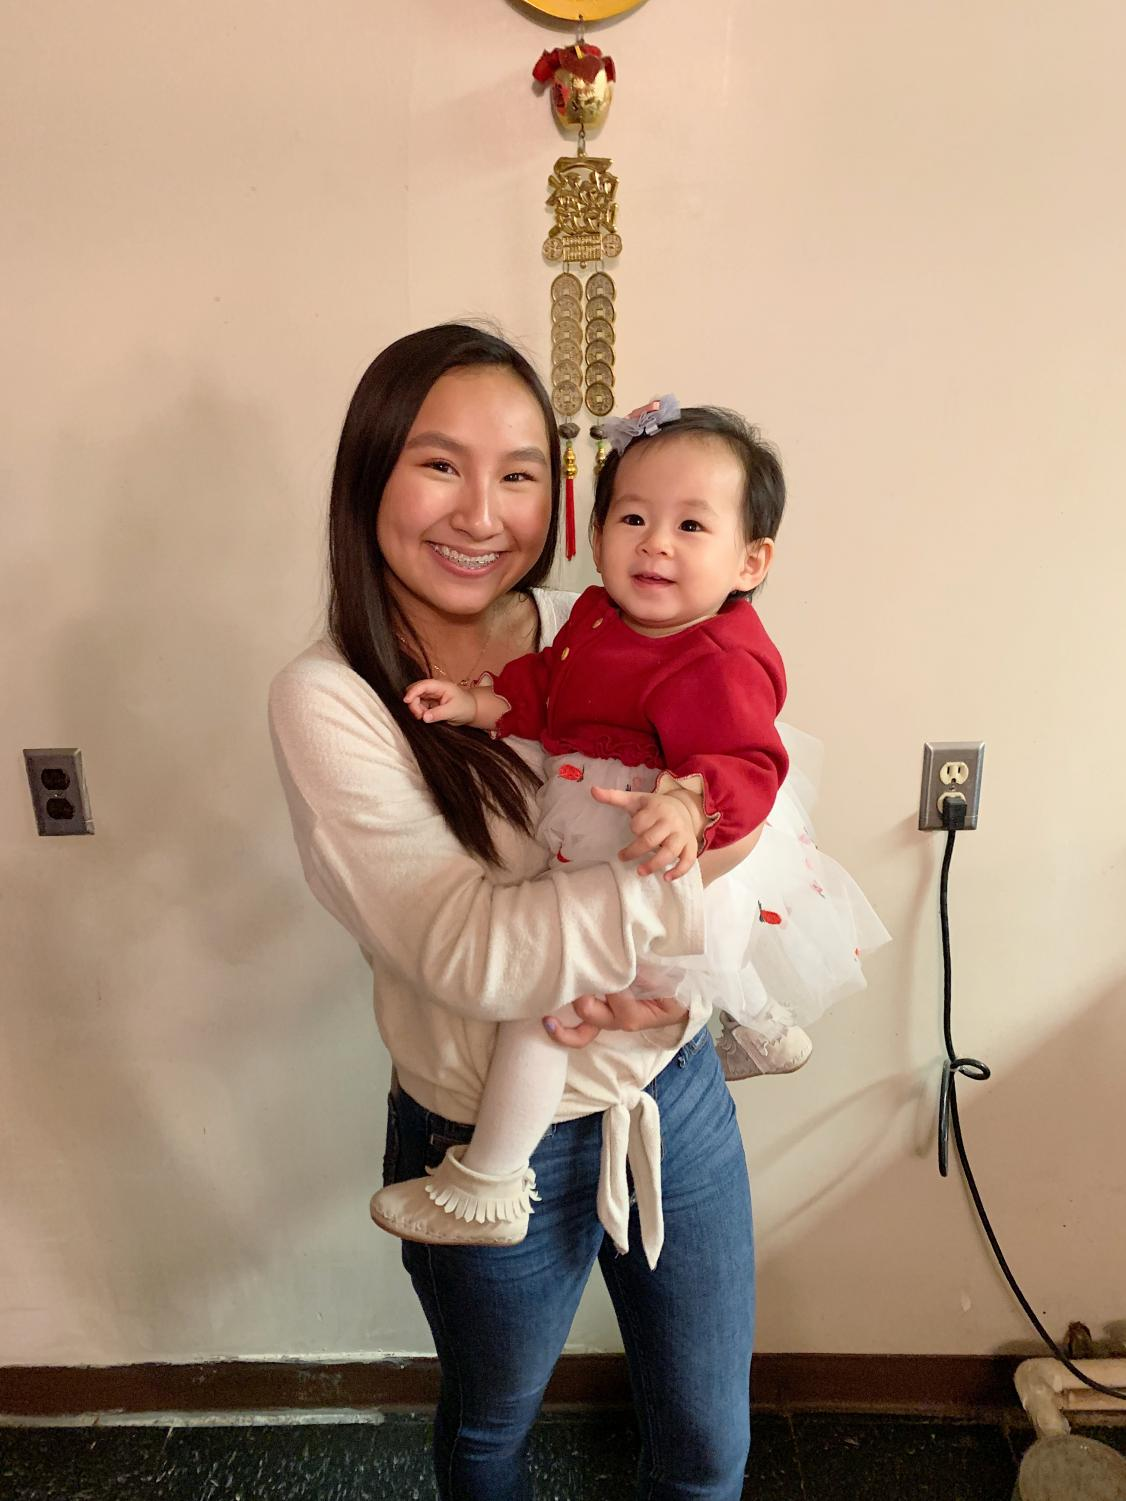 Luna and her cousin's baby are spending all the time they get creating memories before family members leave Kentucky and return to New York.